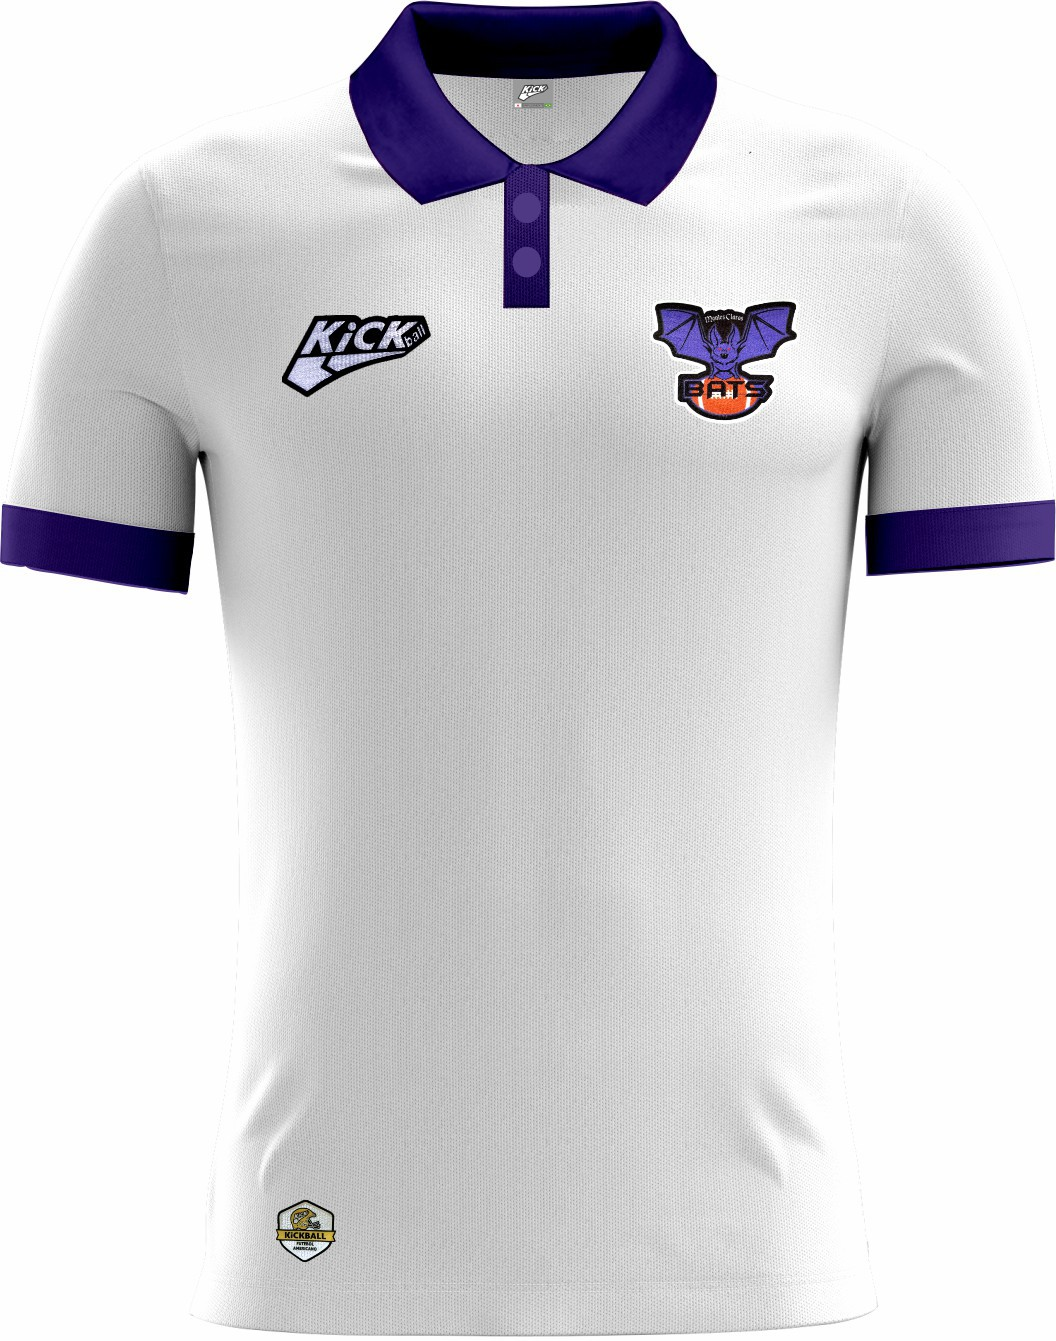 Camisa Of. Montes Claros Bats Tryout Polo Inf. Mod2